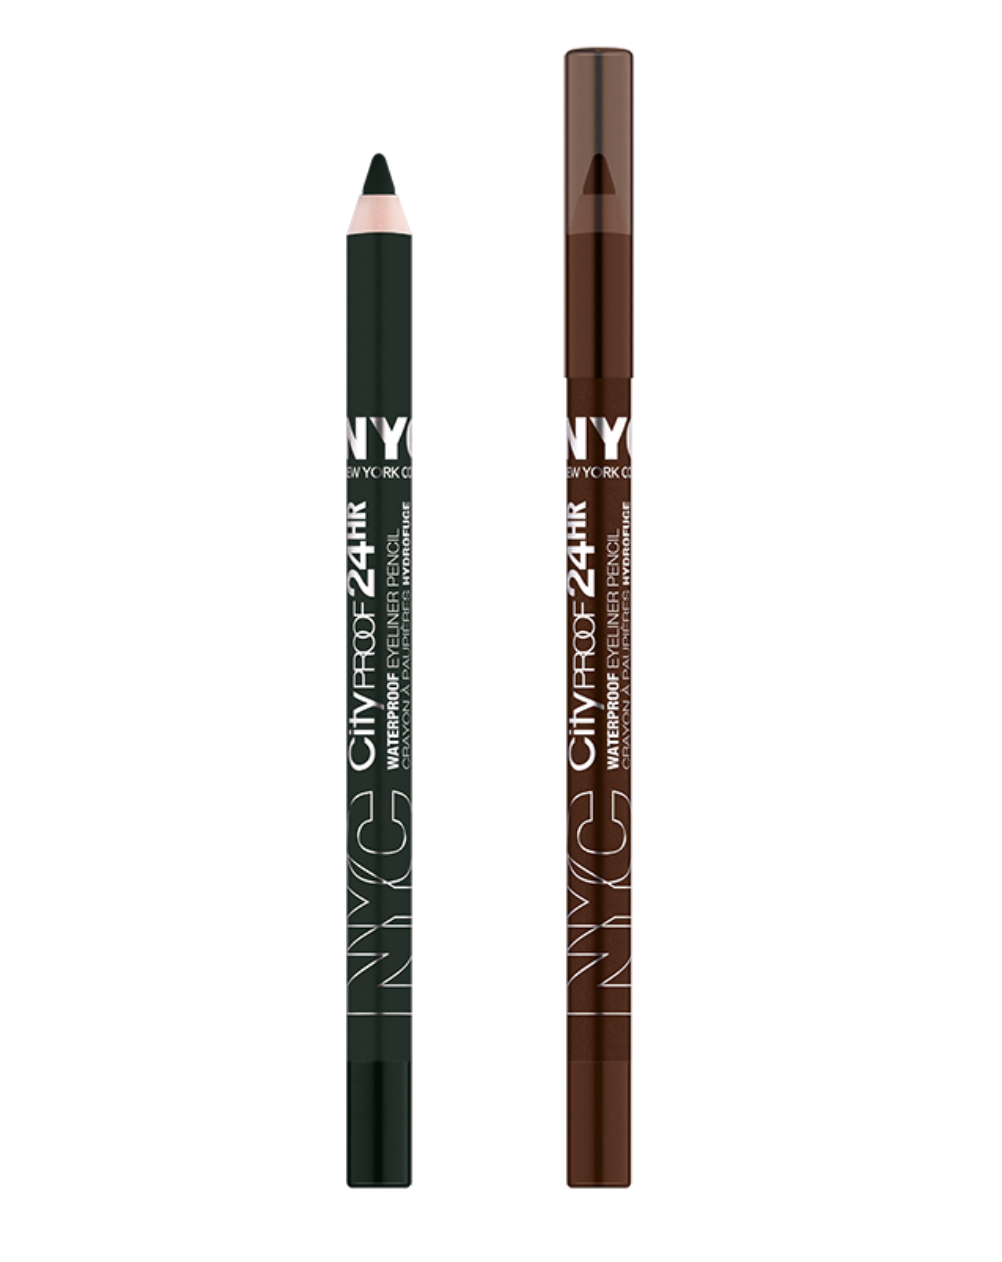 NYC Cityproof 24HR Waterproof Eyeliner